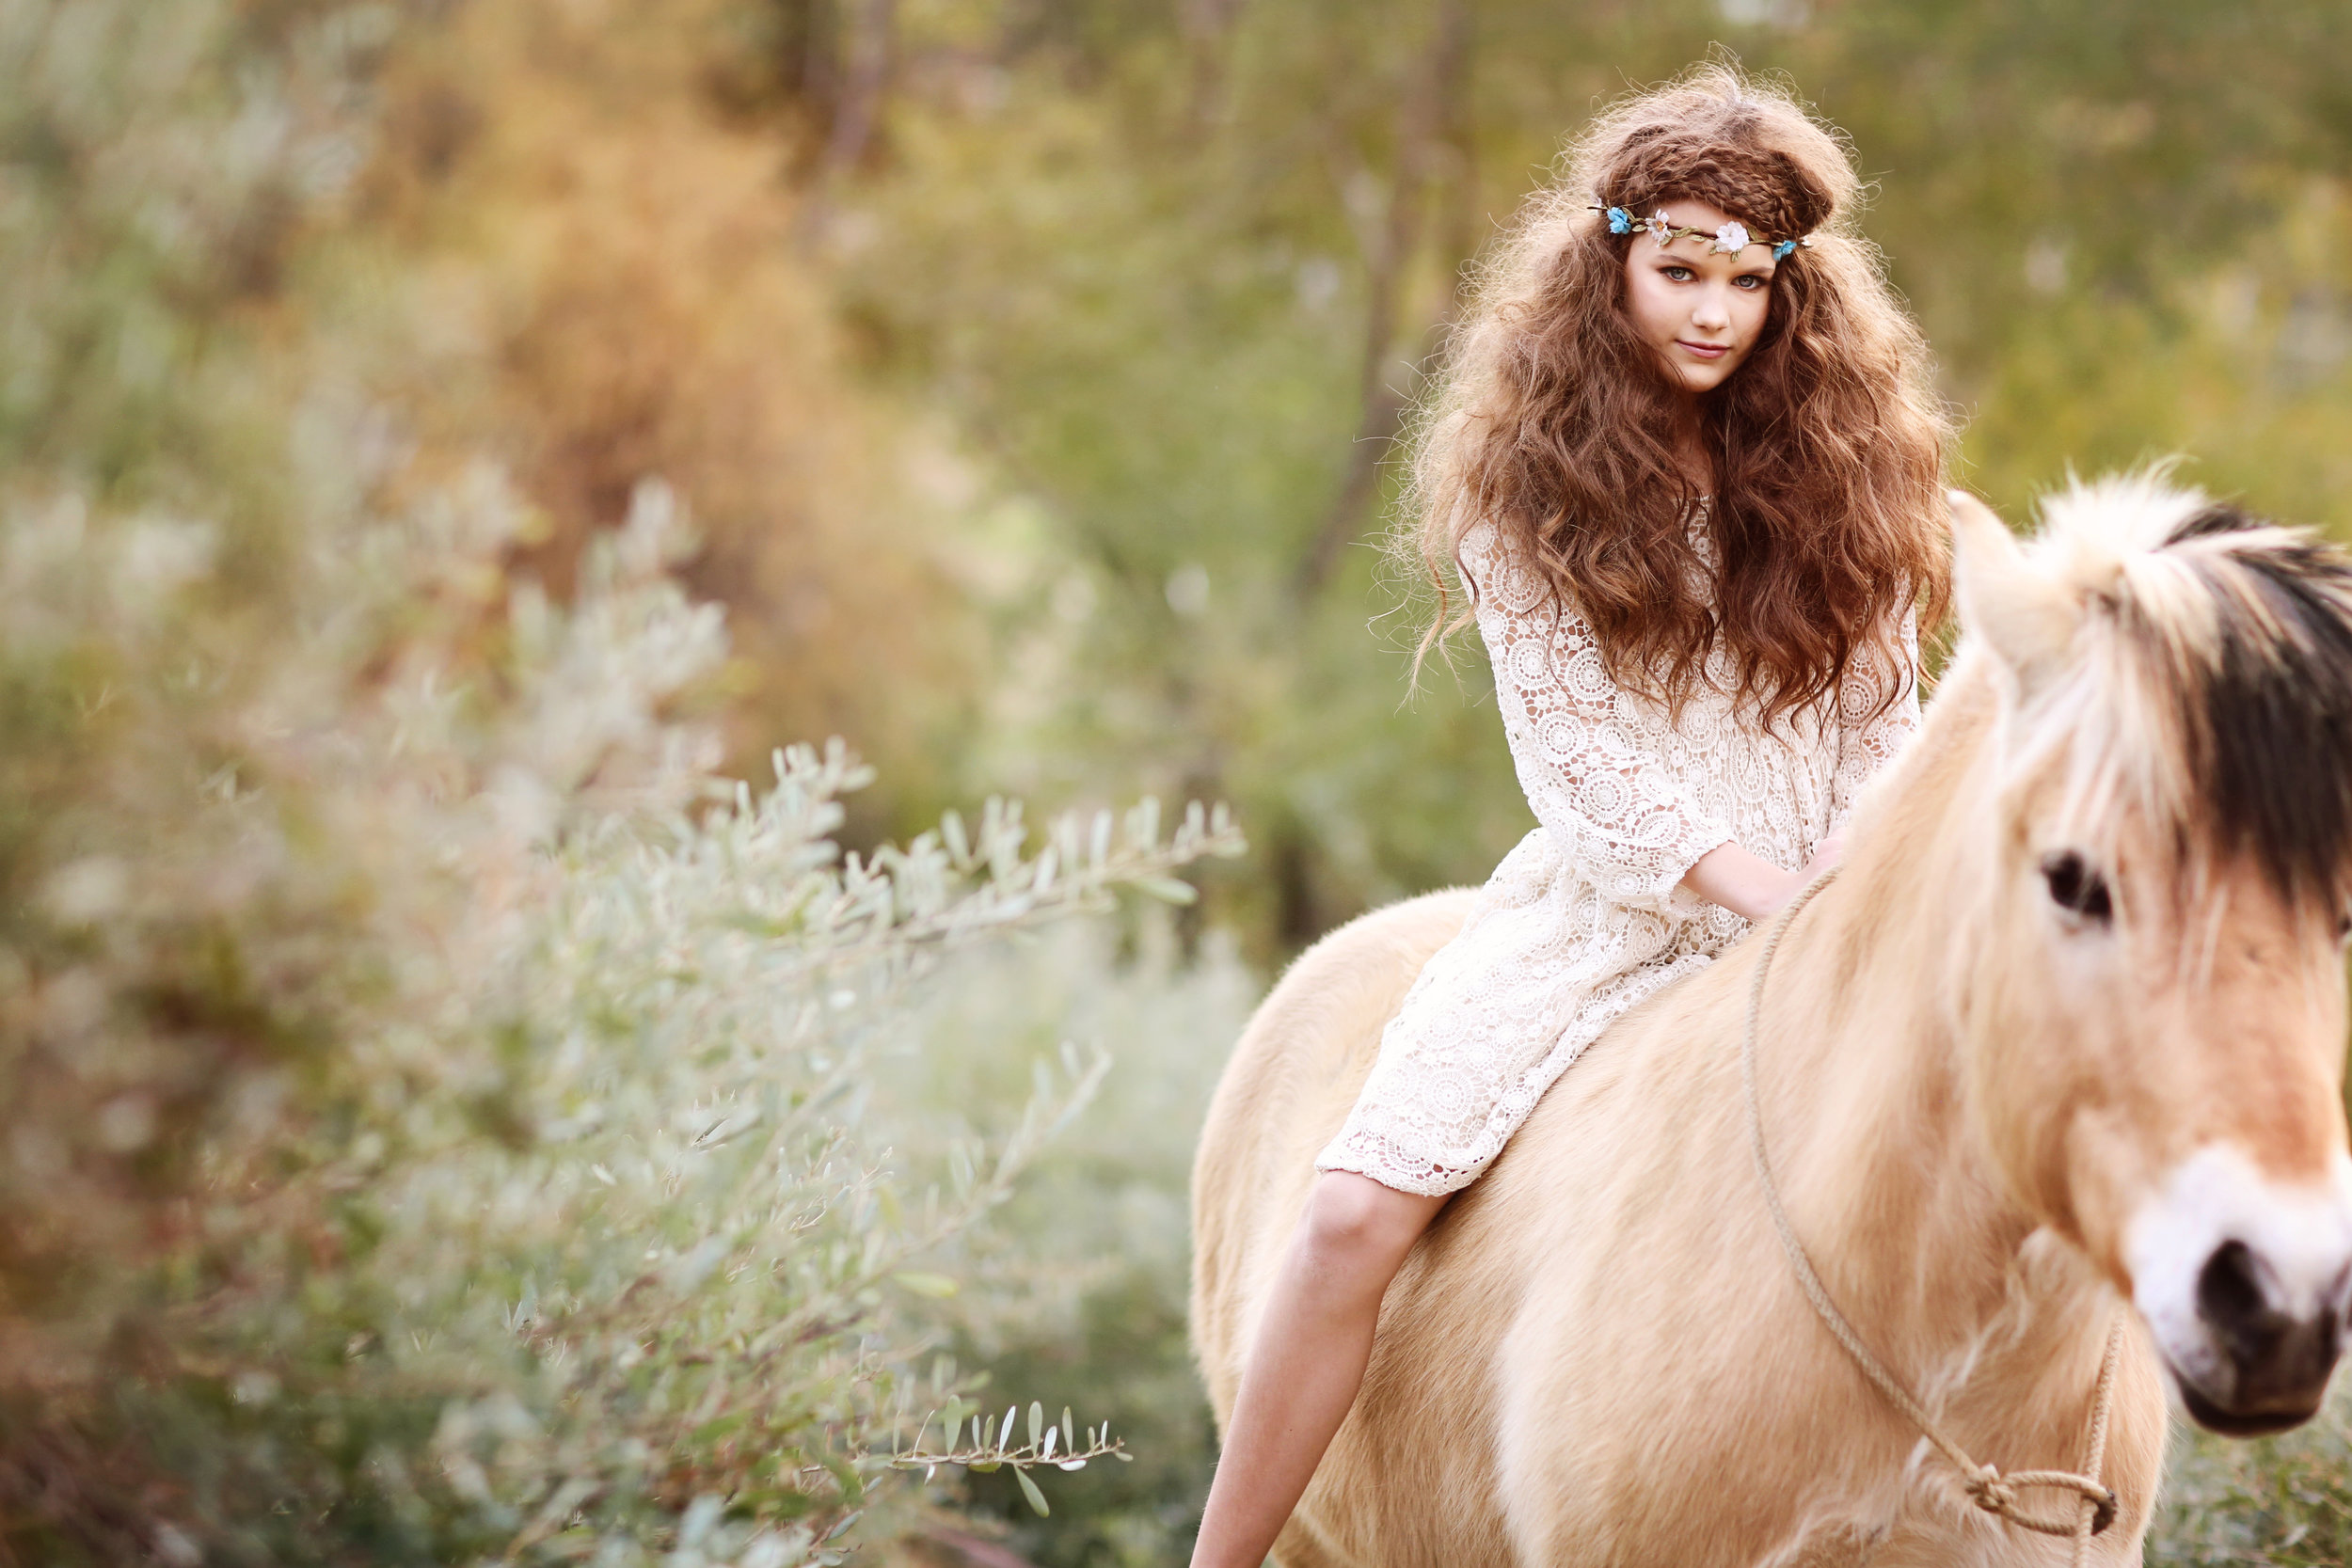 Young girl on a white horse in an Orange County field